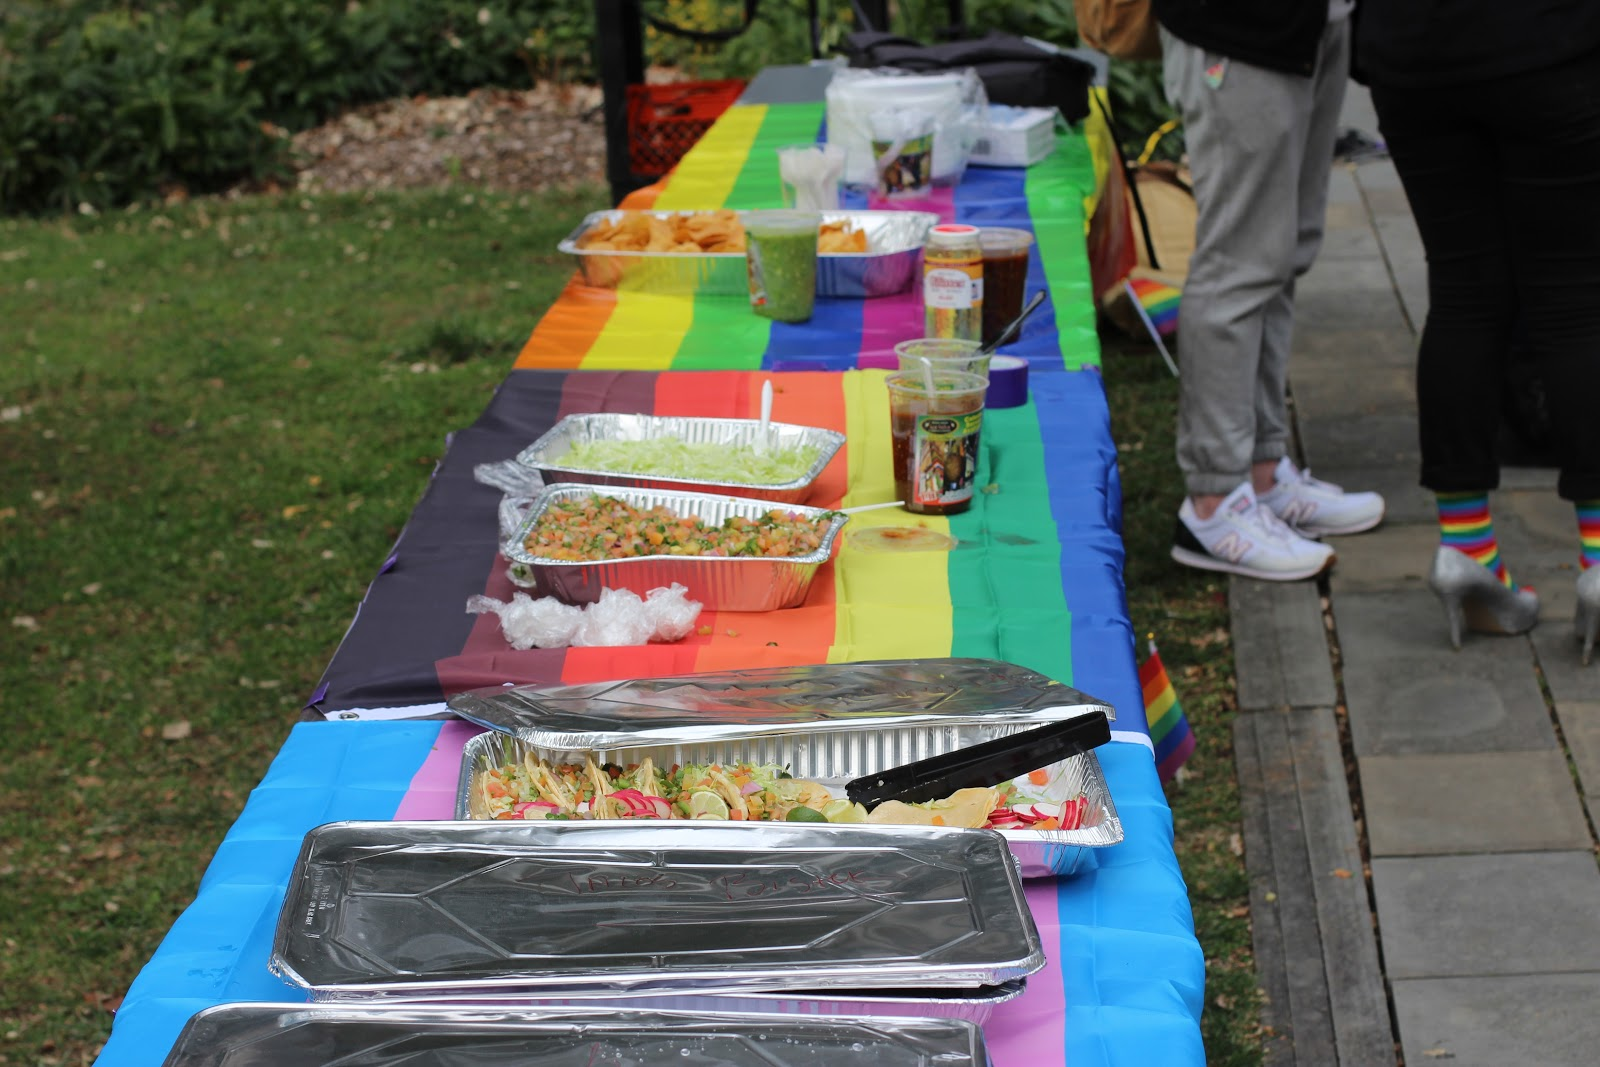 The Pride Month Committee (PMC) serves food during the Fashion Show